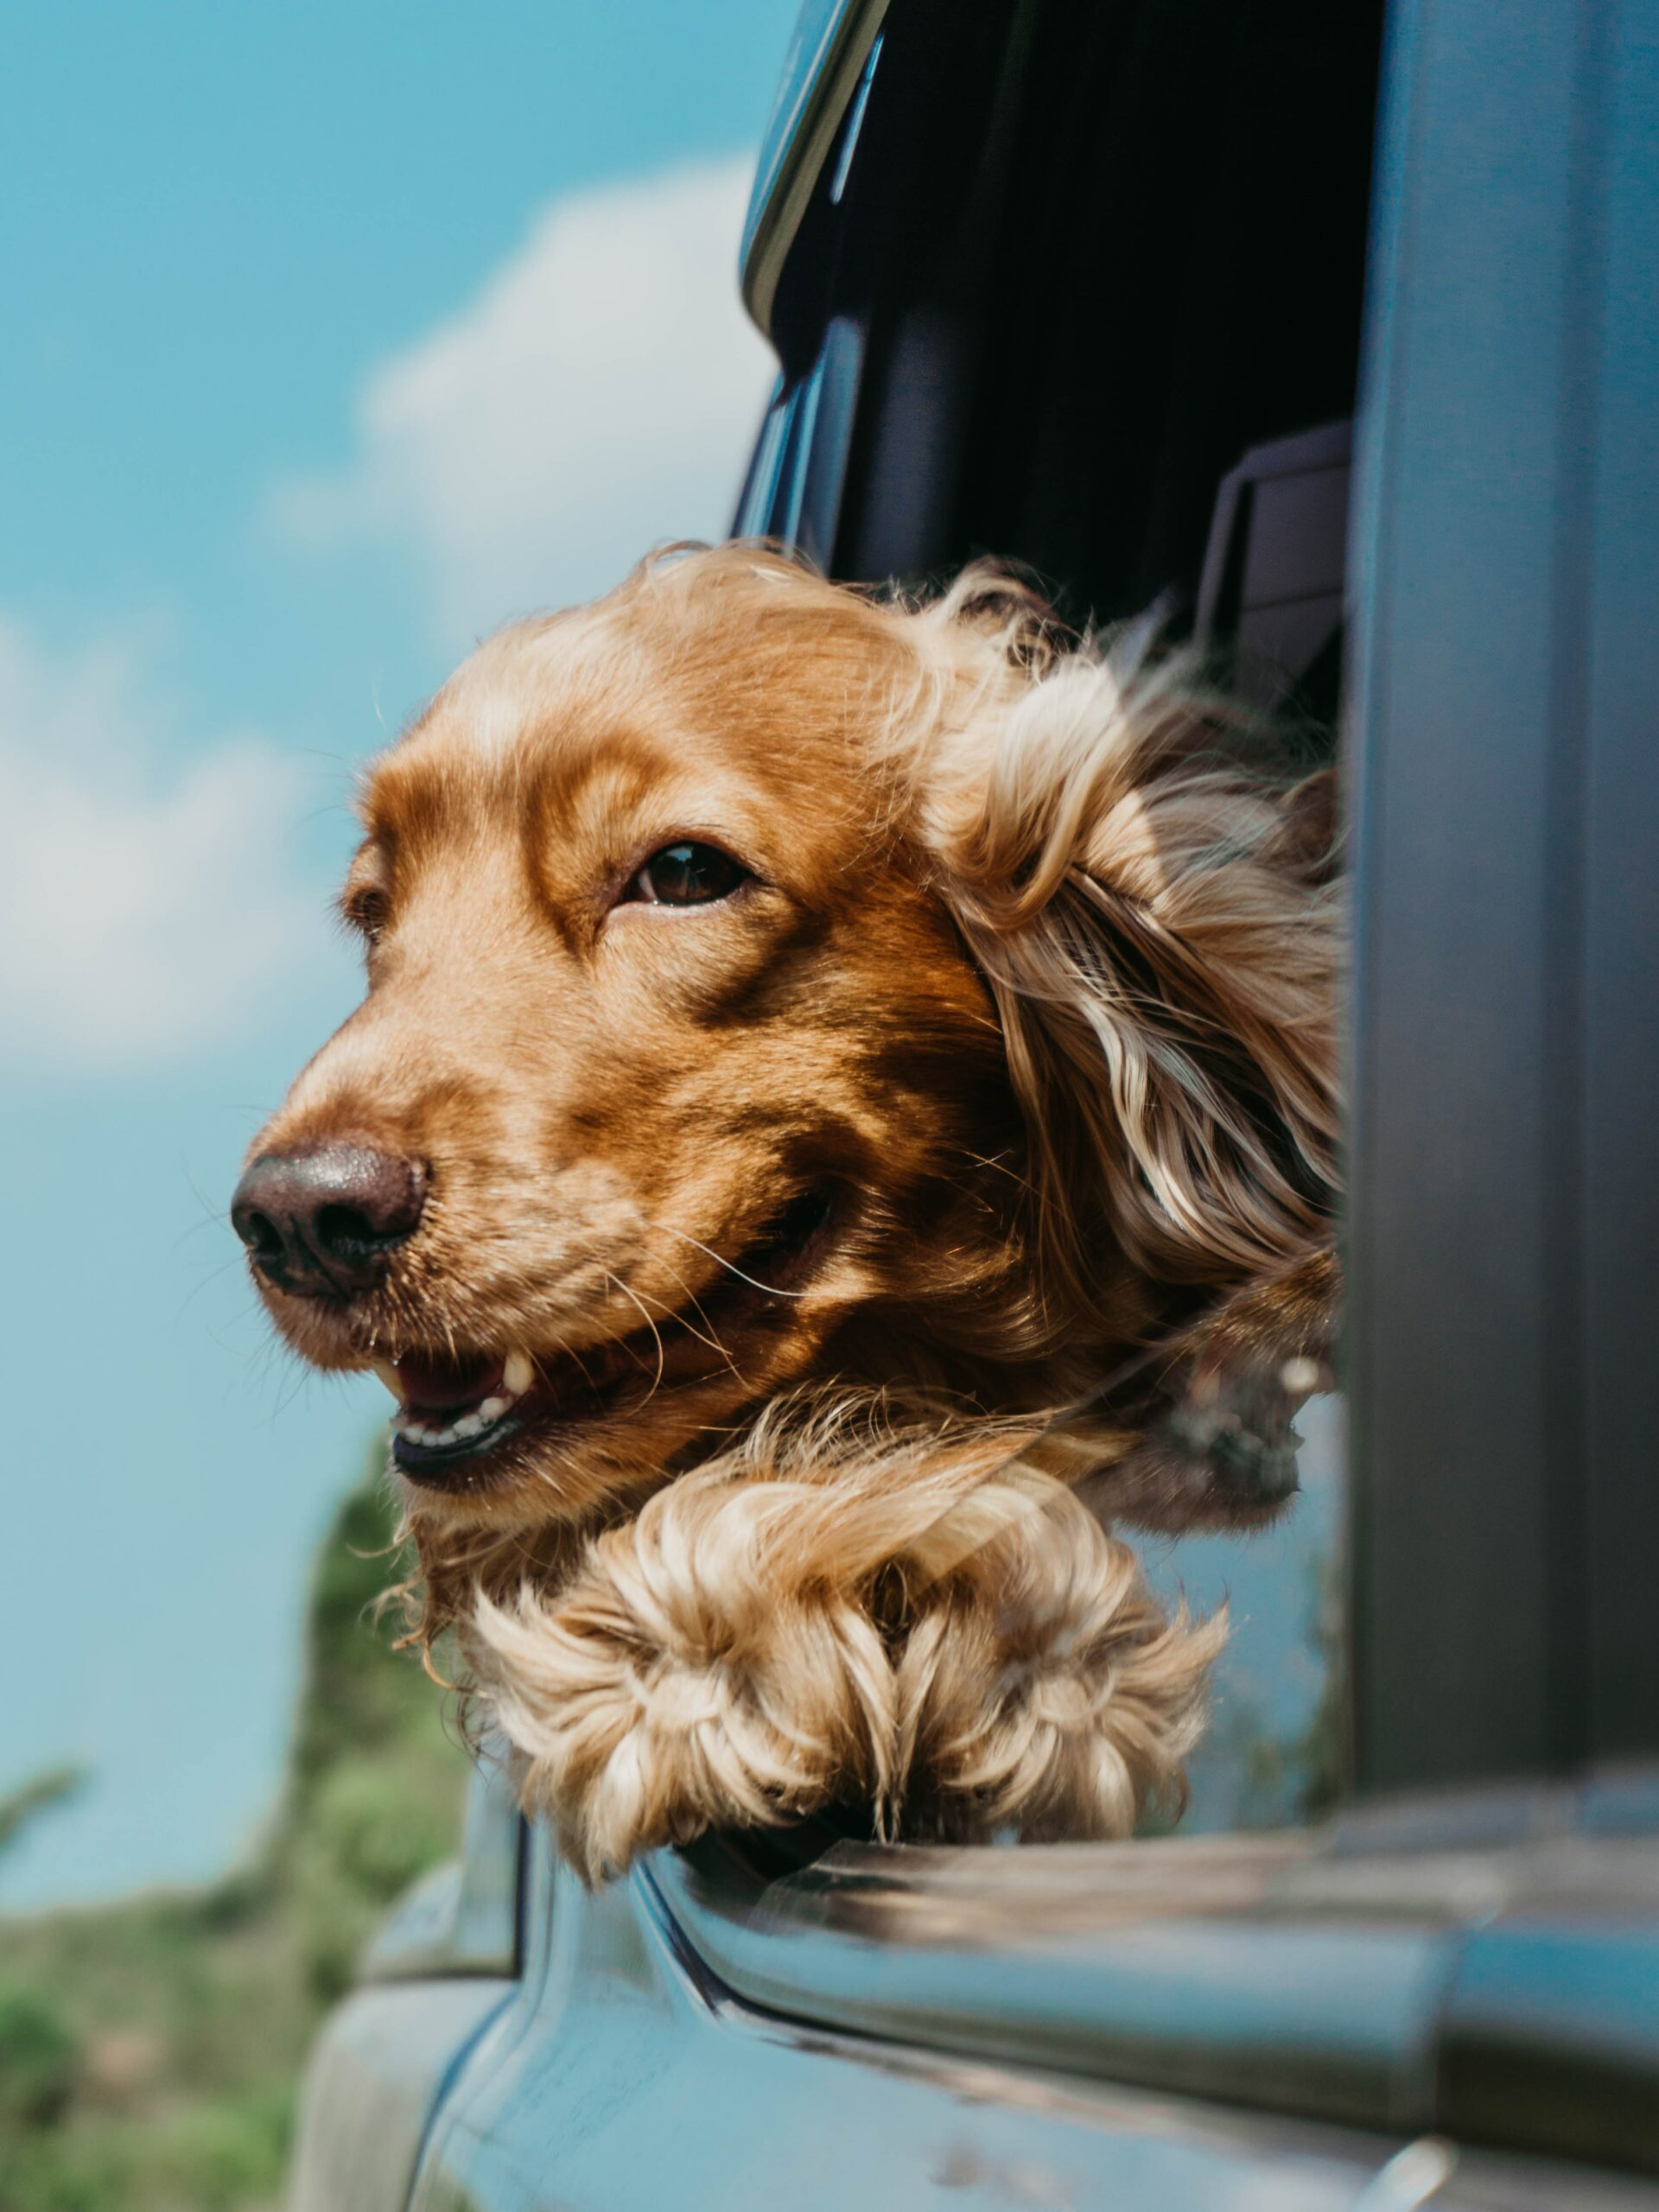 A golden retriever with his head and paw out the window of a vehicle with the wind blowing through its fur.